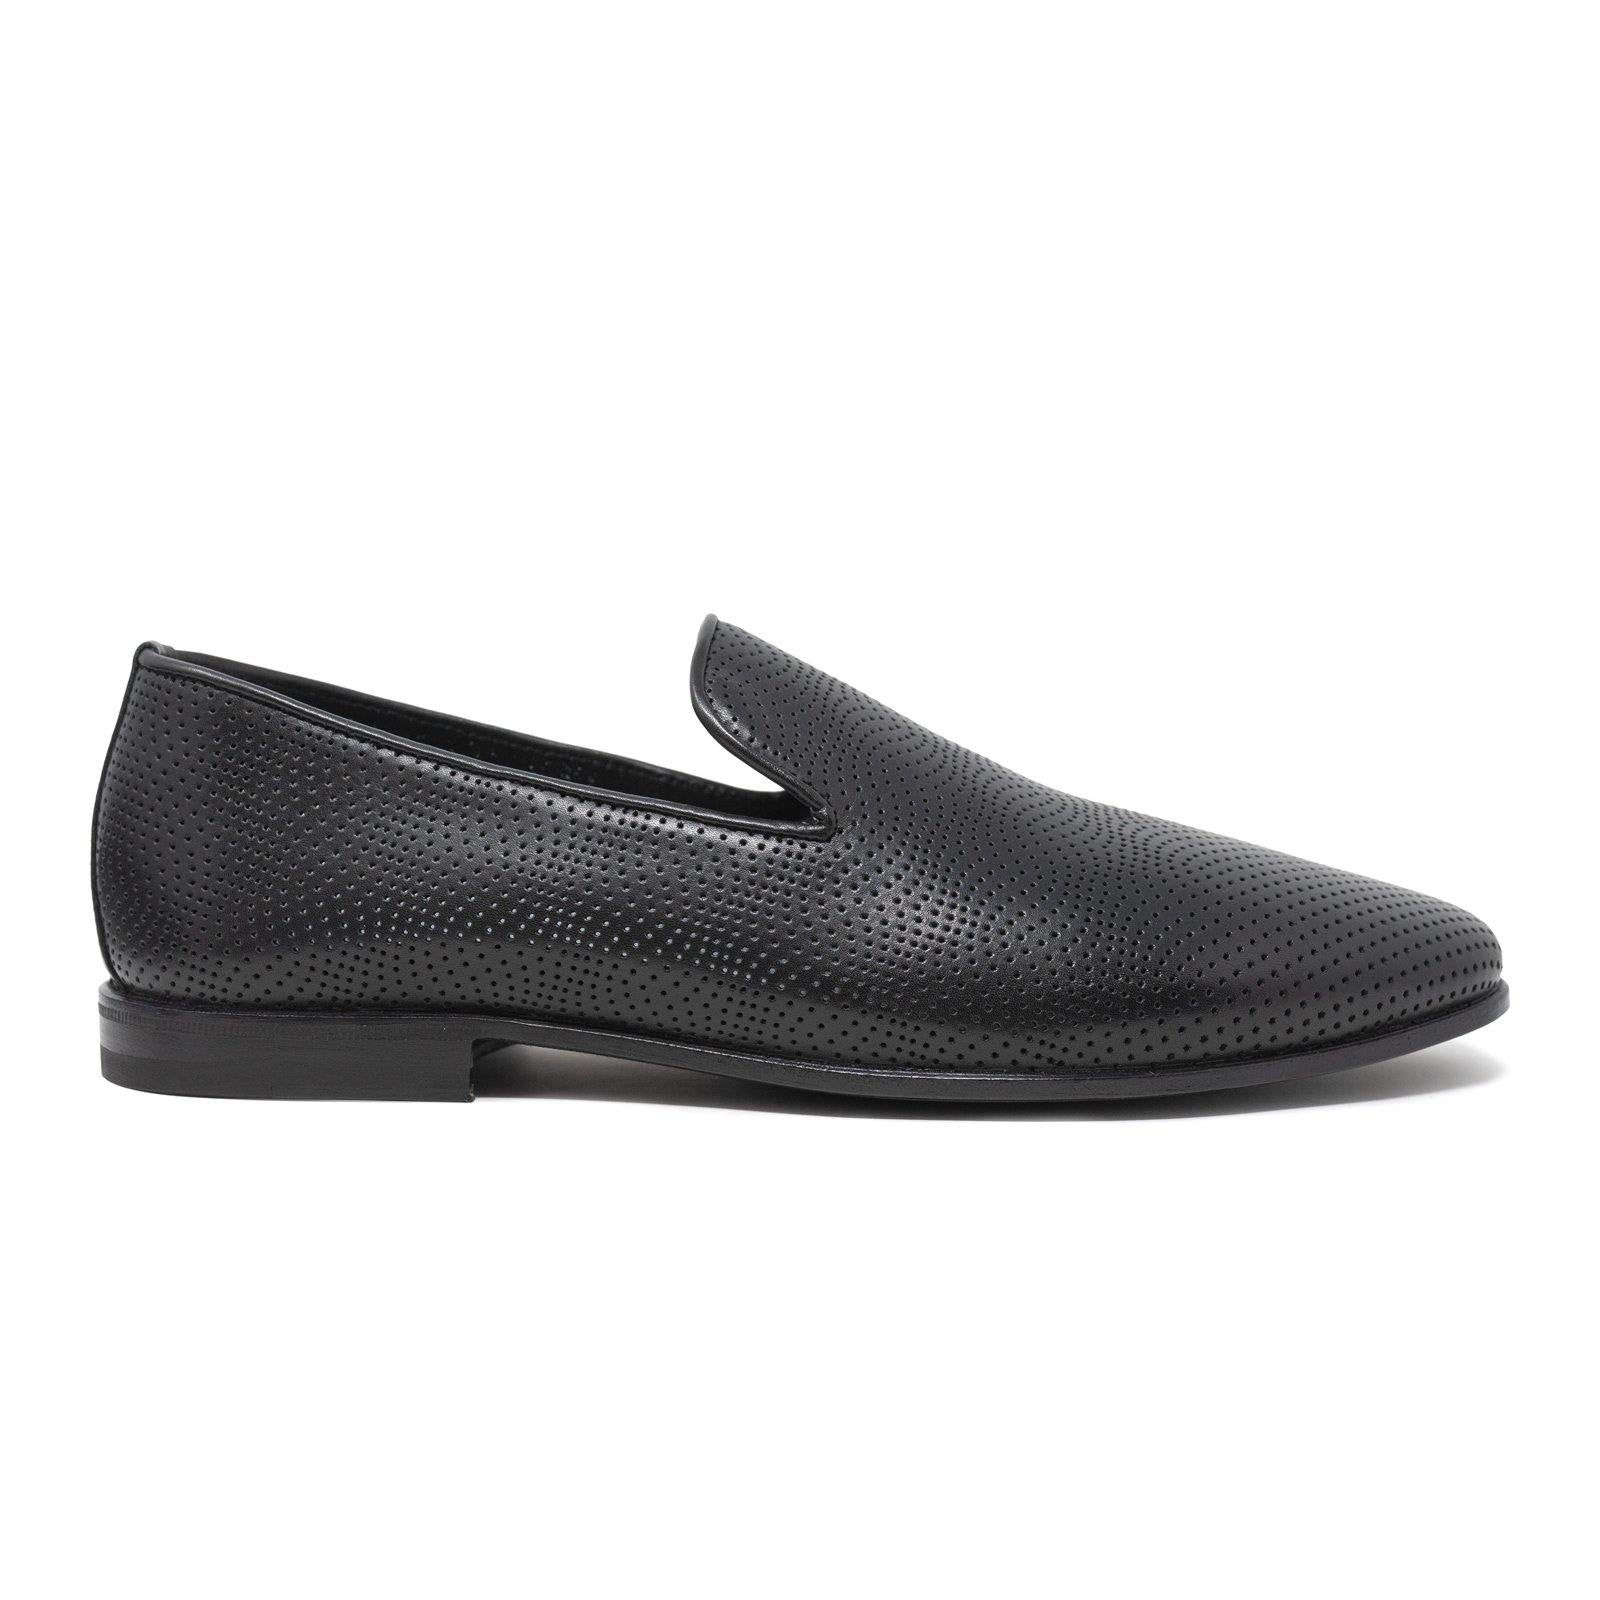 Men Slip On Leather Shoes in Black Perforated Nappa - Jennifer Tattanelli